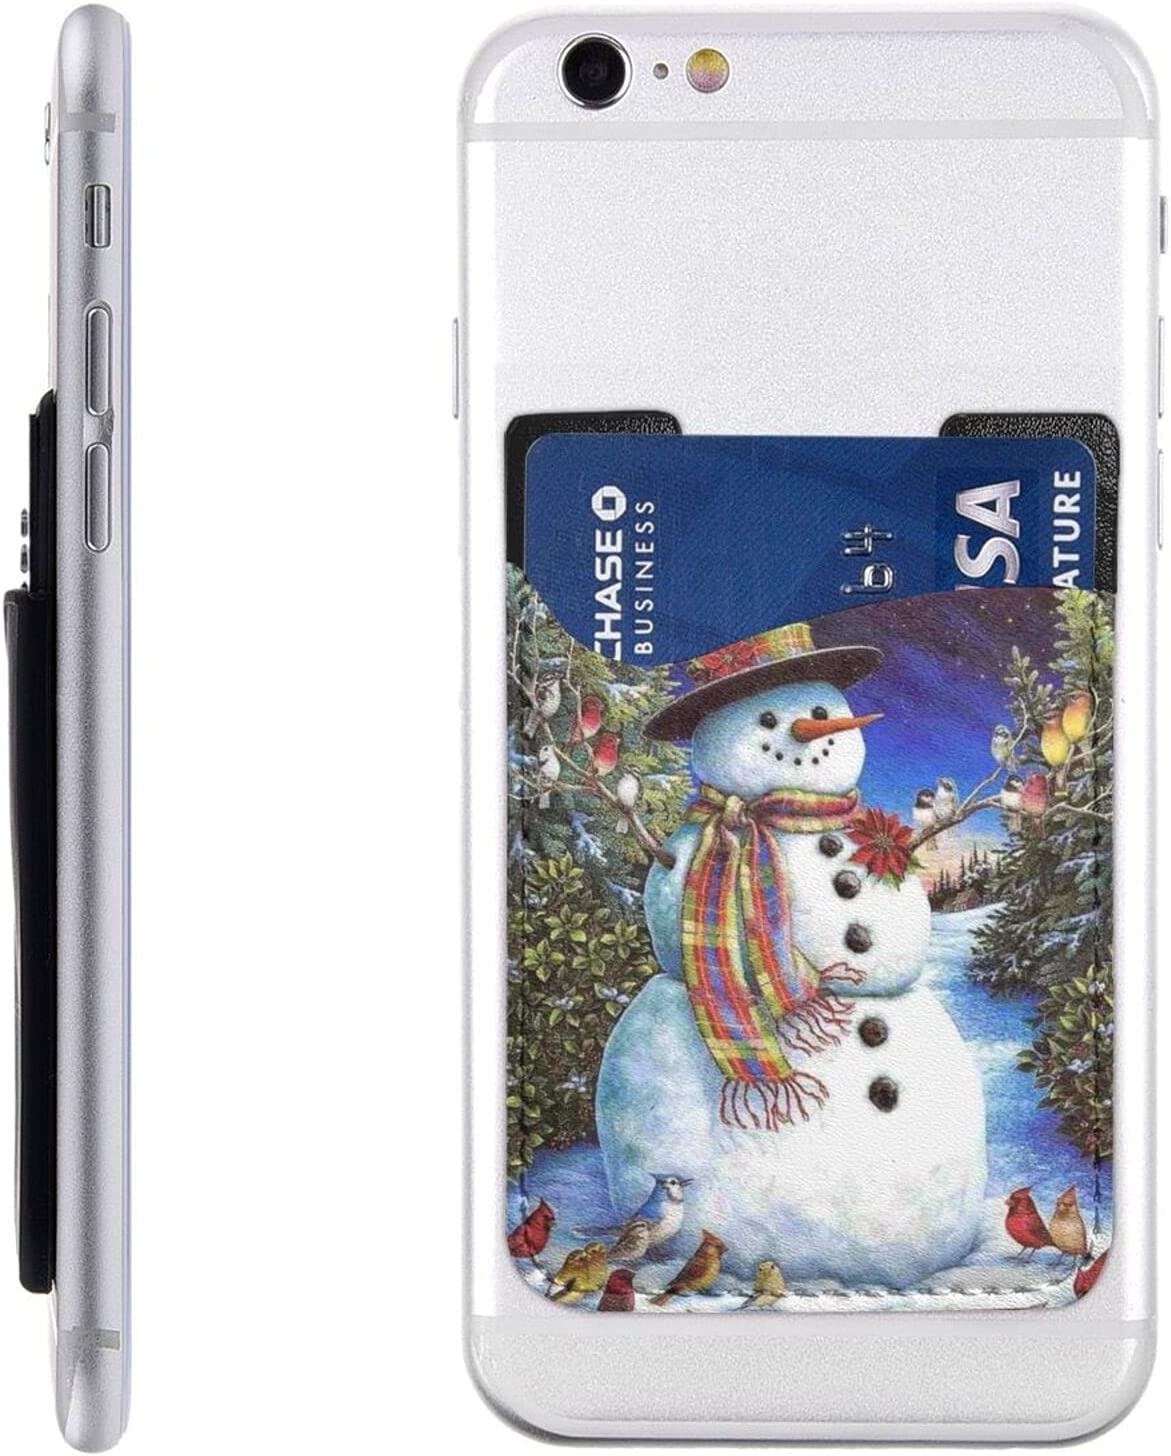 Snowman Birds Christmas Daily bargain Max 52% OFF sale Tree Phone Stick Holder Card Cell